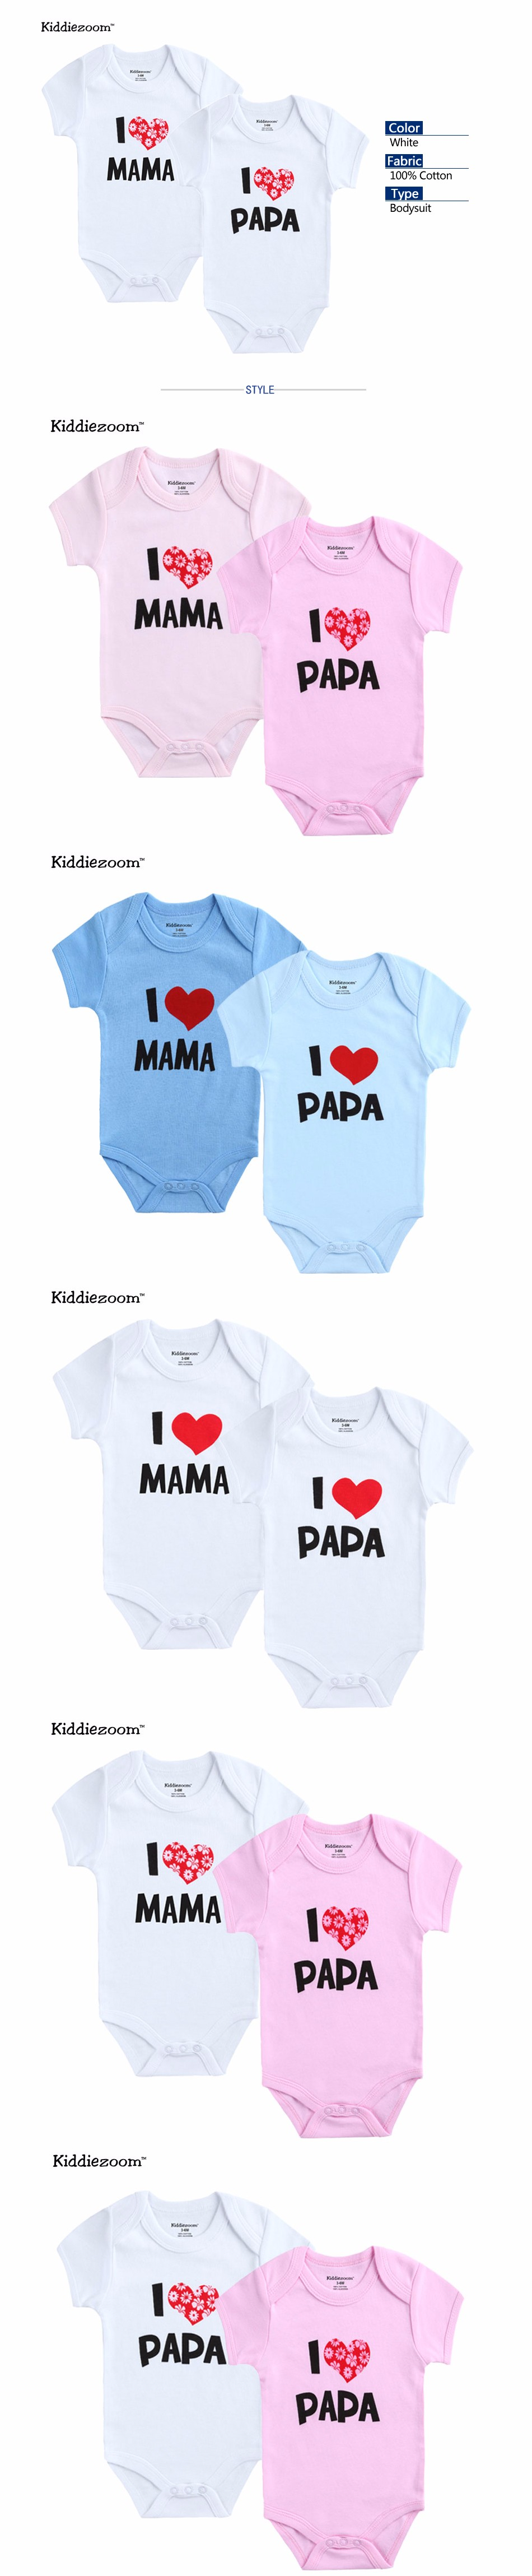 baby rompers (6)